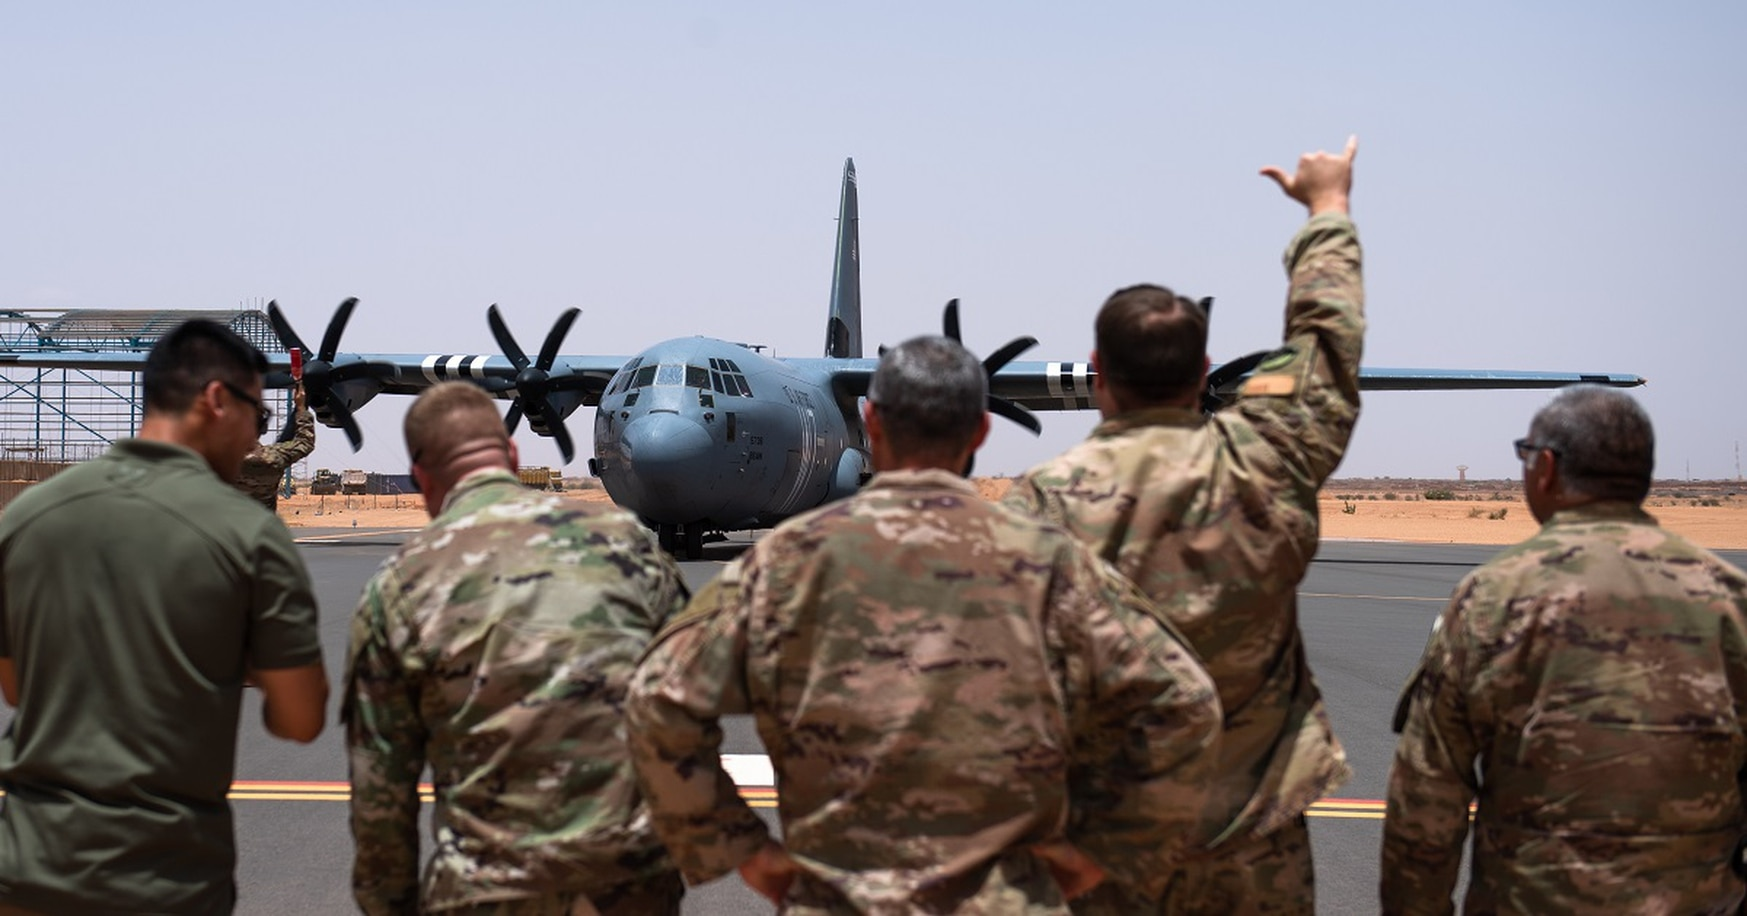 Airmen assigned to the 409th Air Expeditionary Group watch as a C-130J Super Hercules taxis in at Air Base 201 in Agadez, Niger, Aug. 3. The C-130 landing marked the next step in airfield evaluations by starting Visual Flight Rules operations at the base. (Staff Sgt. Devin Boyer/Air Force)